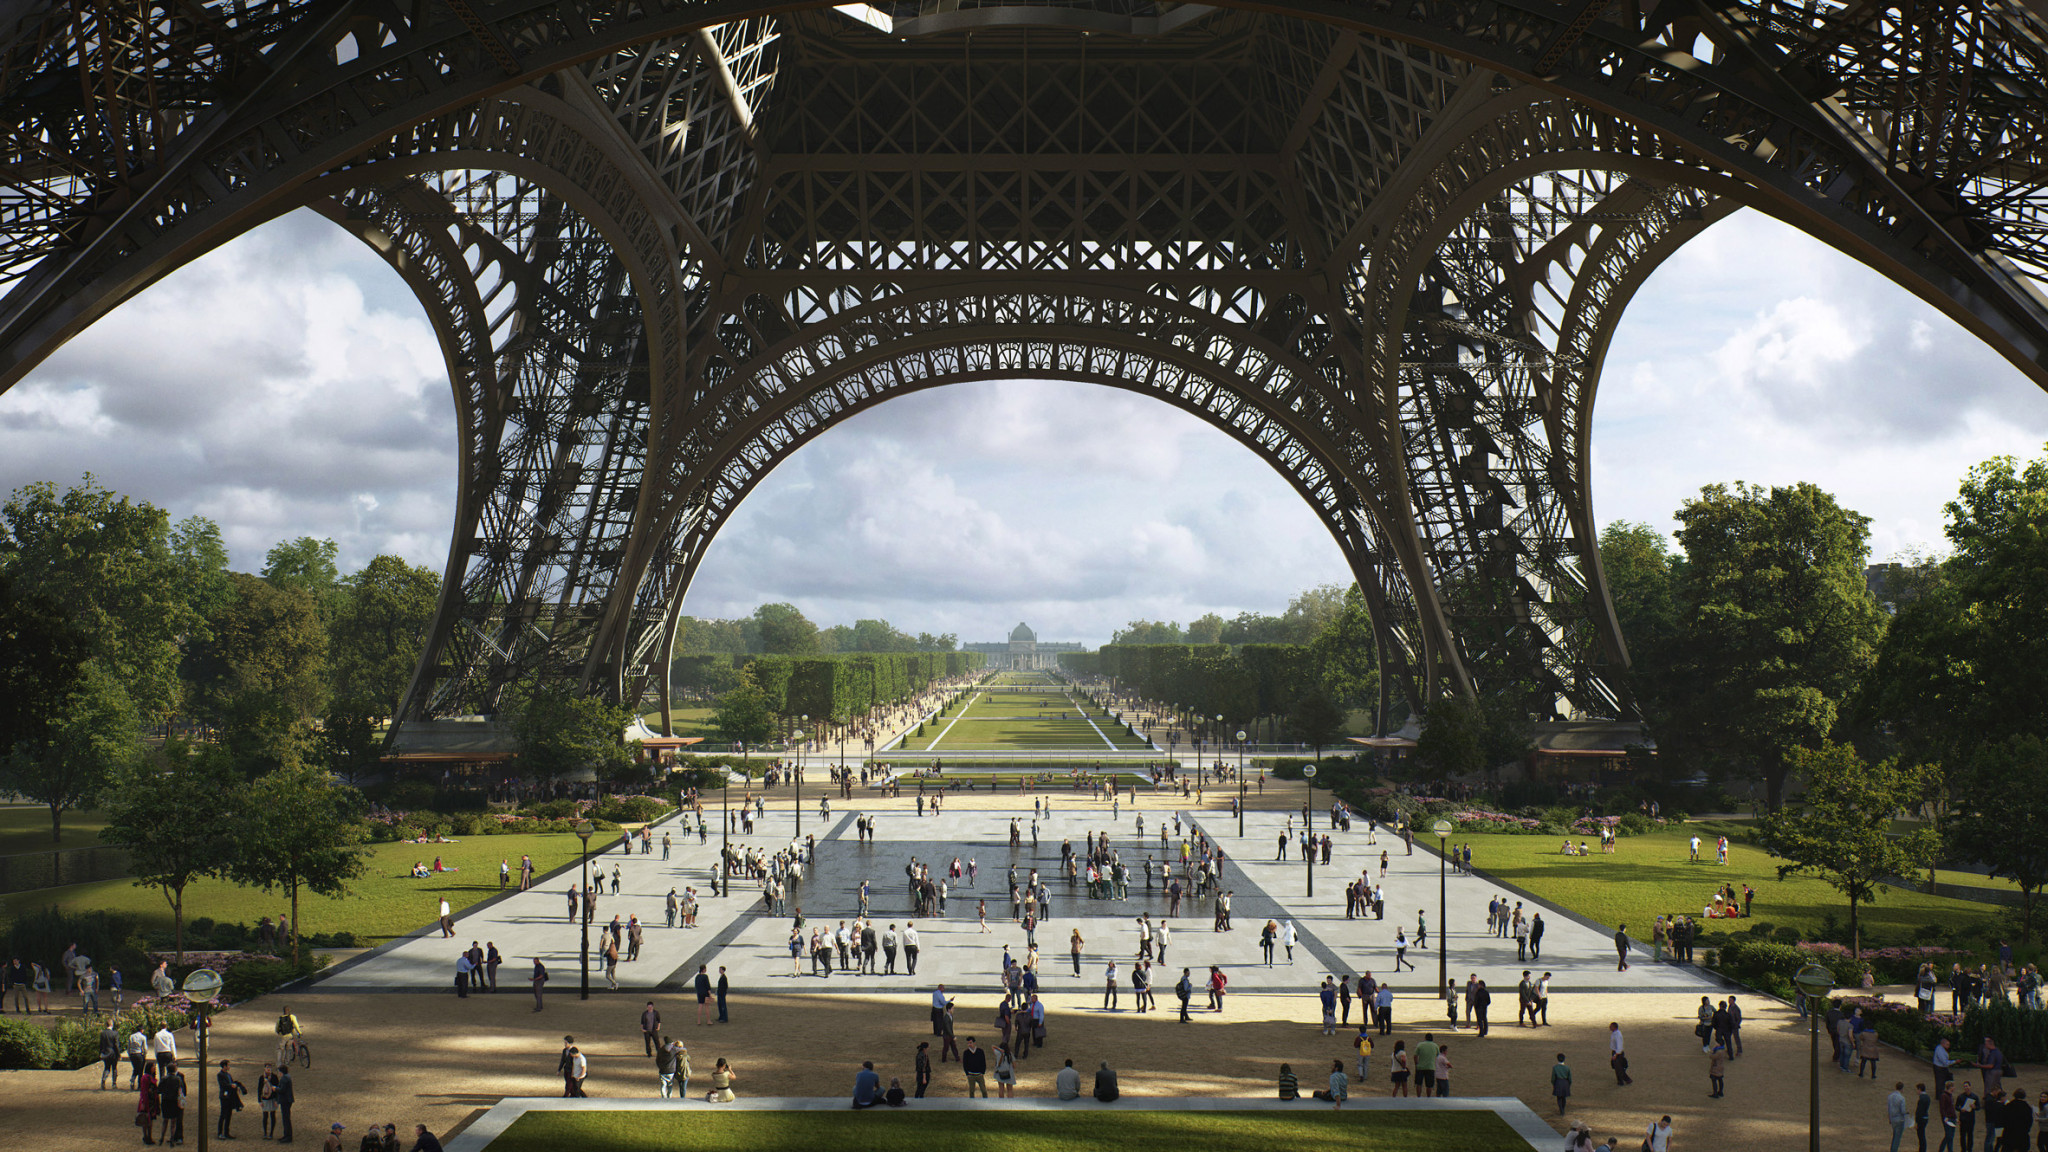 Trees will be planted in all of the new spaces around the Eiffel Tower, contributing to the sustainability of the Paris 2024 Olympic Games ©Gustafson Porter + Bowman